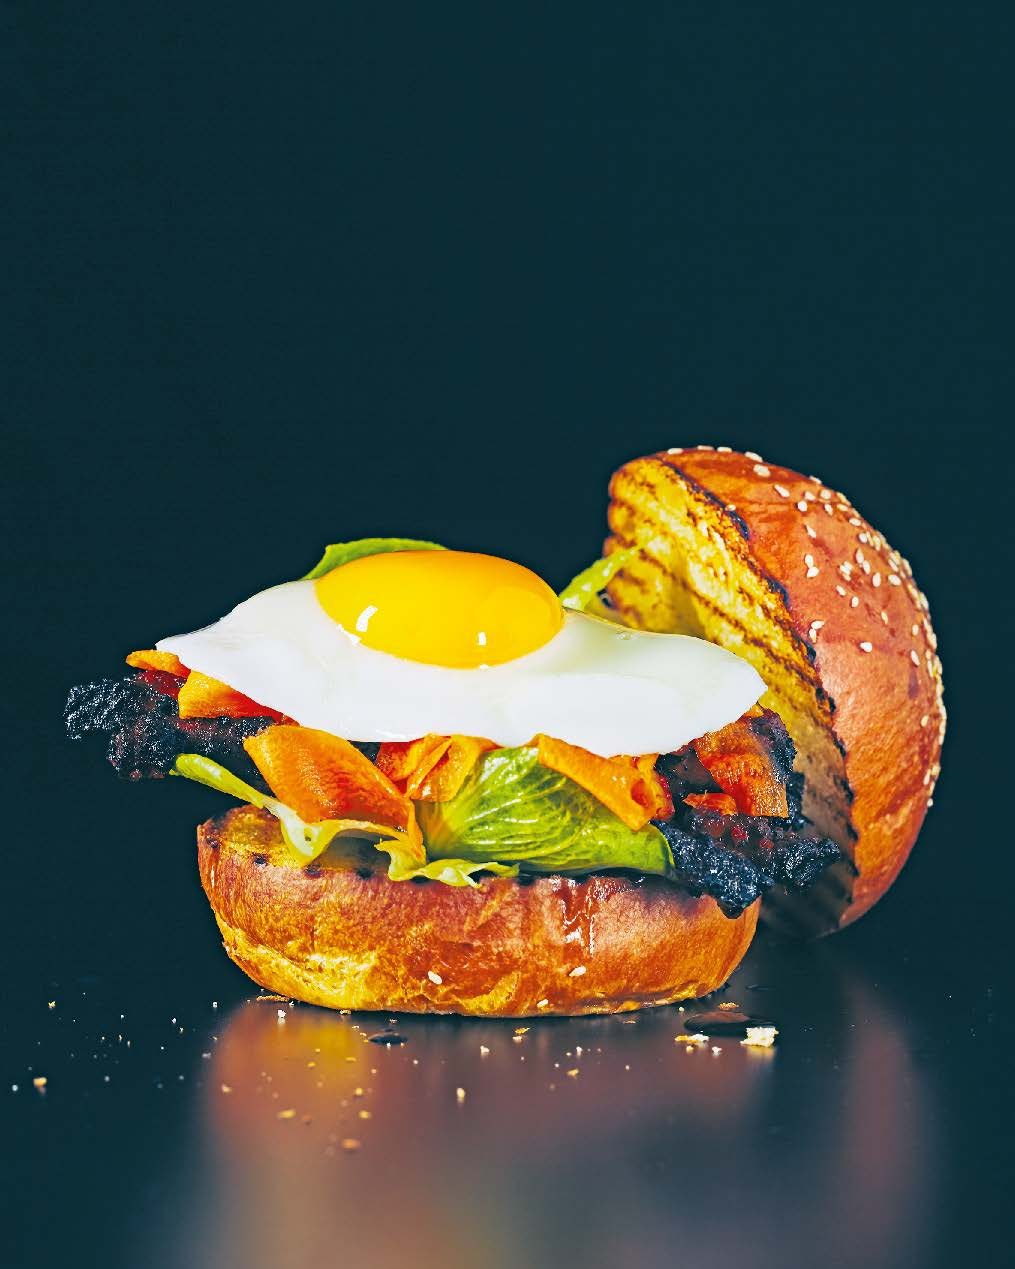 Marinated Korean pork belly with kimchi + fried egg